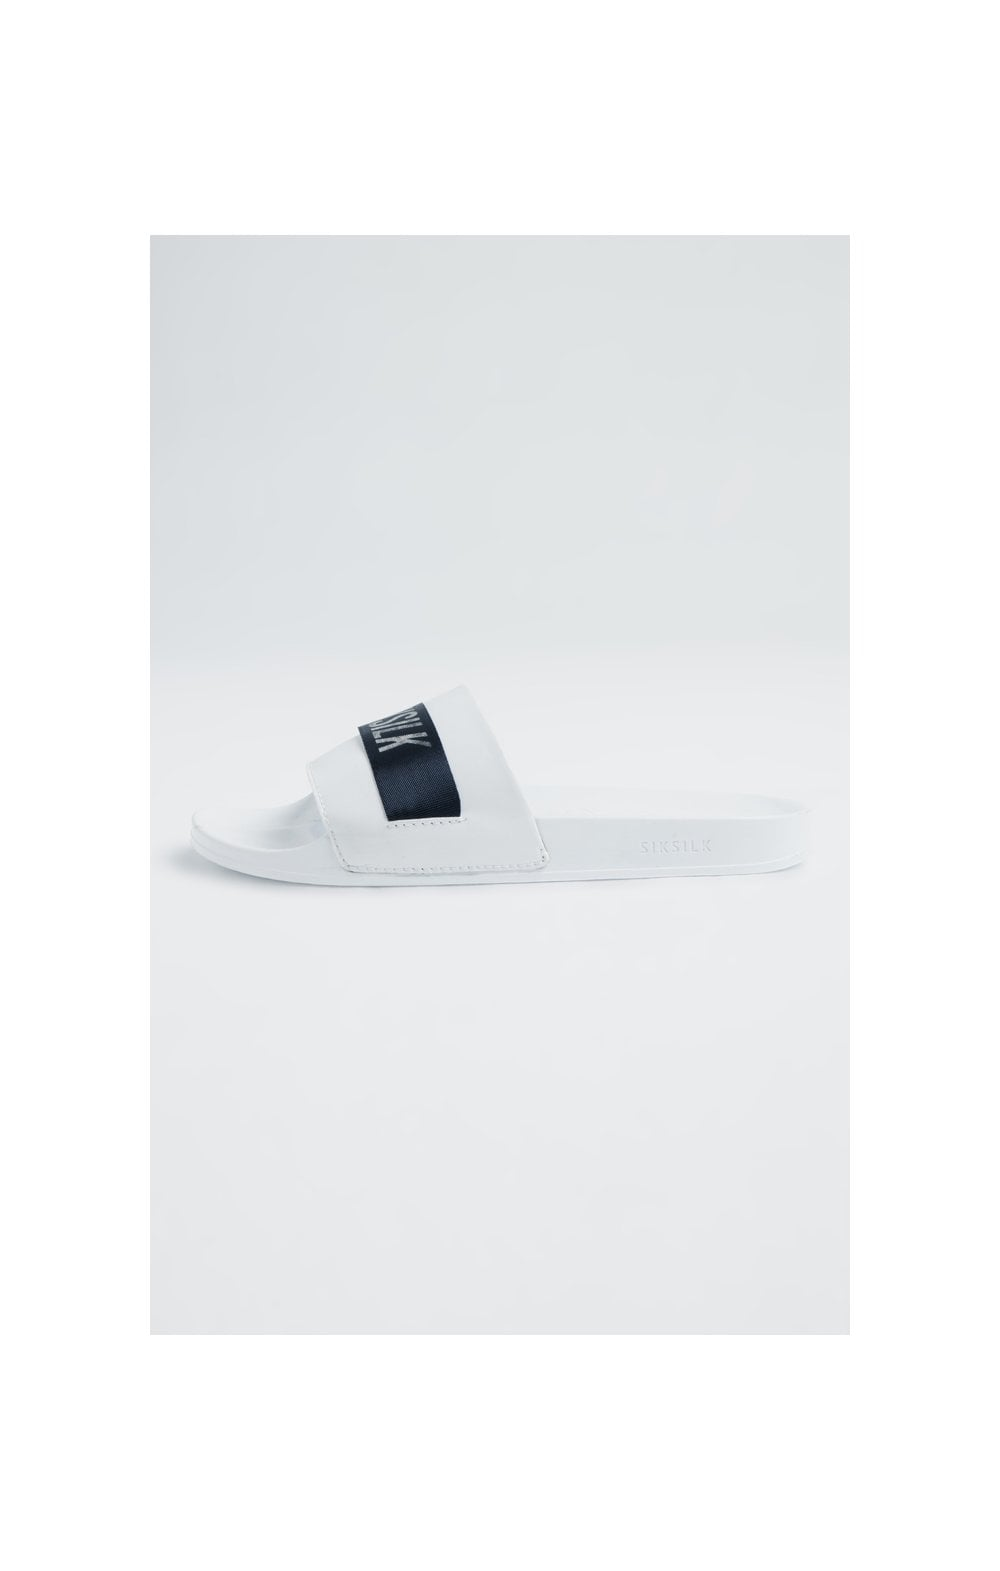 SikSilk Roma Tape Slides – Navy, White & Silver (1)